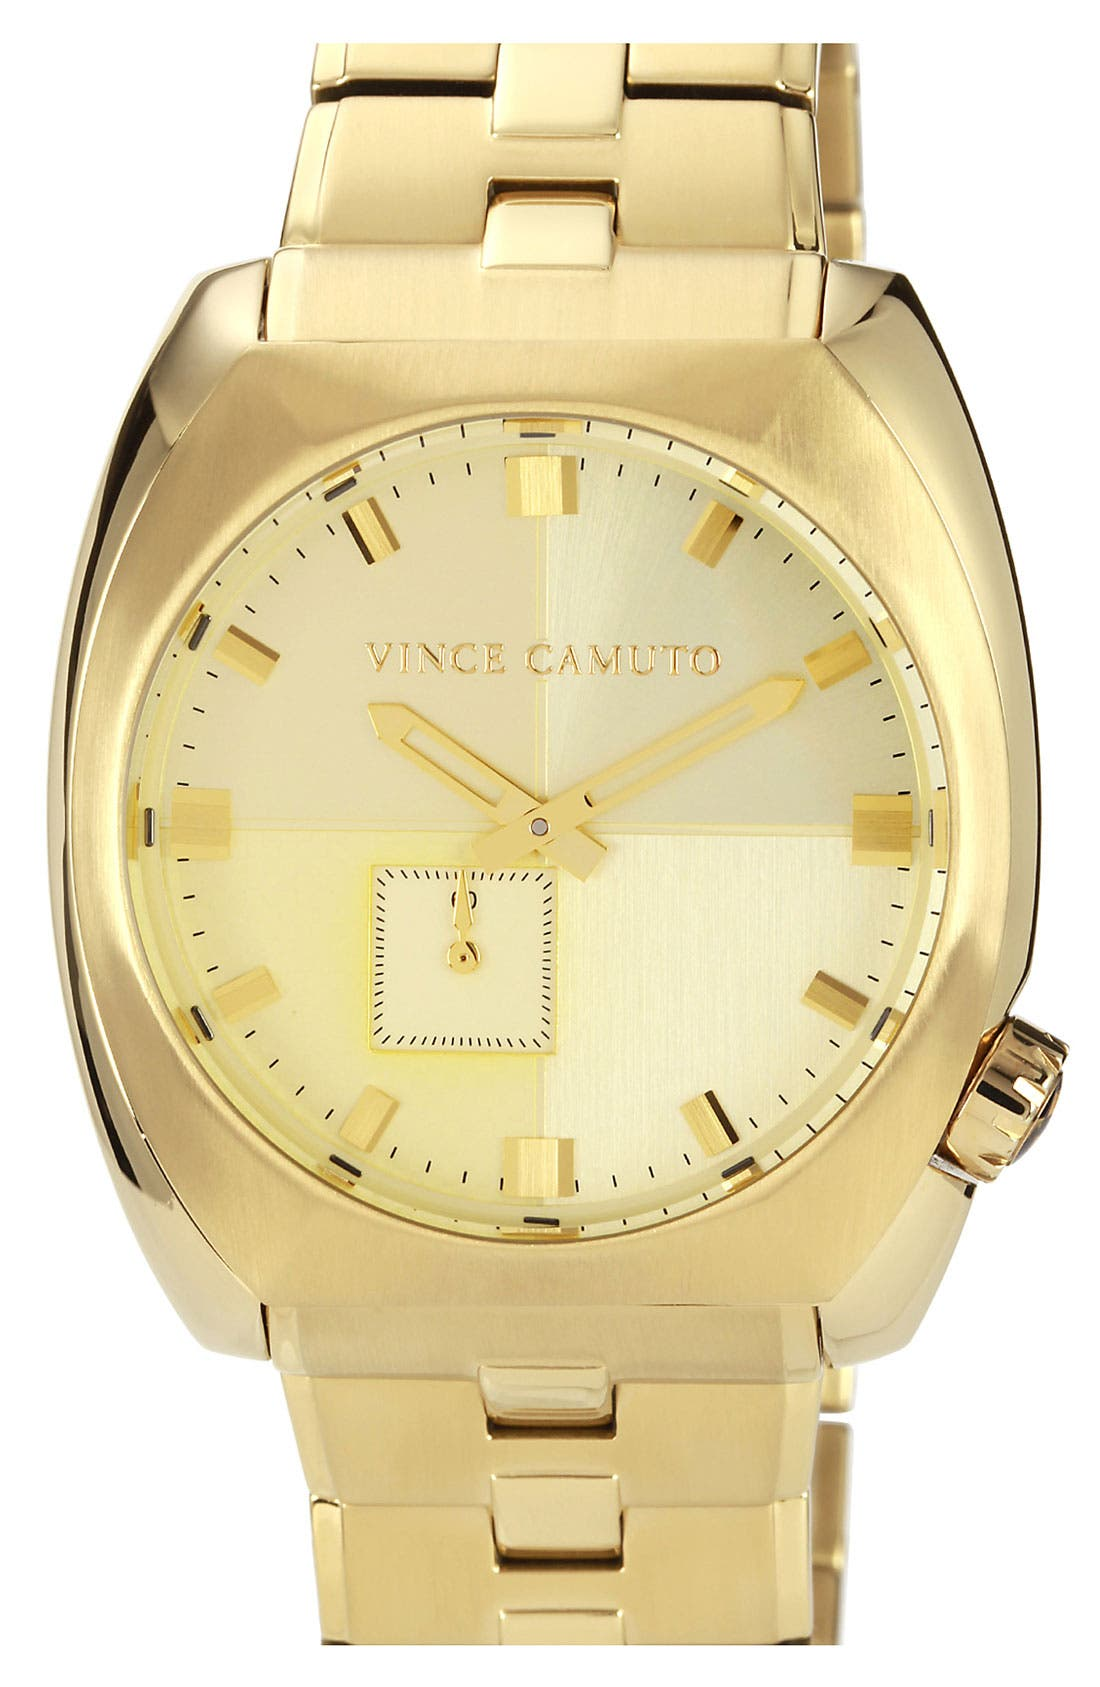 Alternate Image 1 Selected - Vince Camuto 'Cadet' Bracelet Watch, 43mm x 48mm